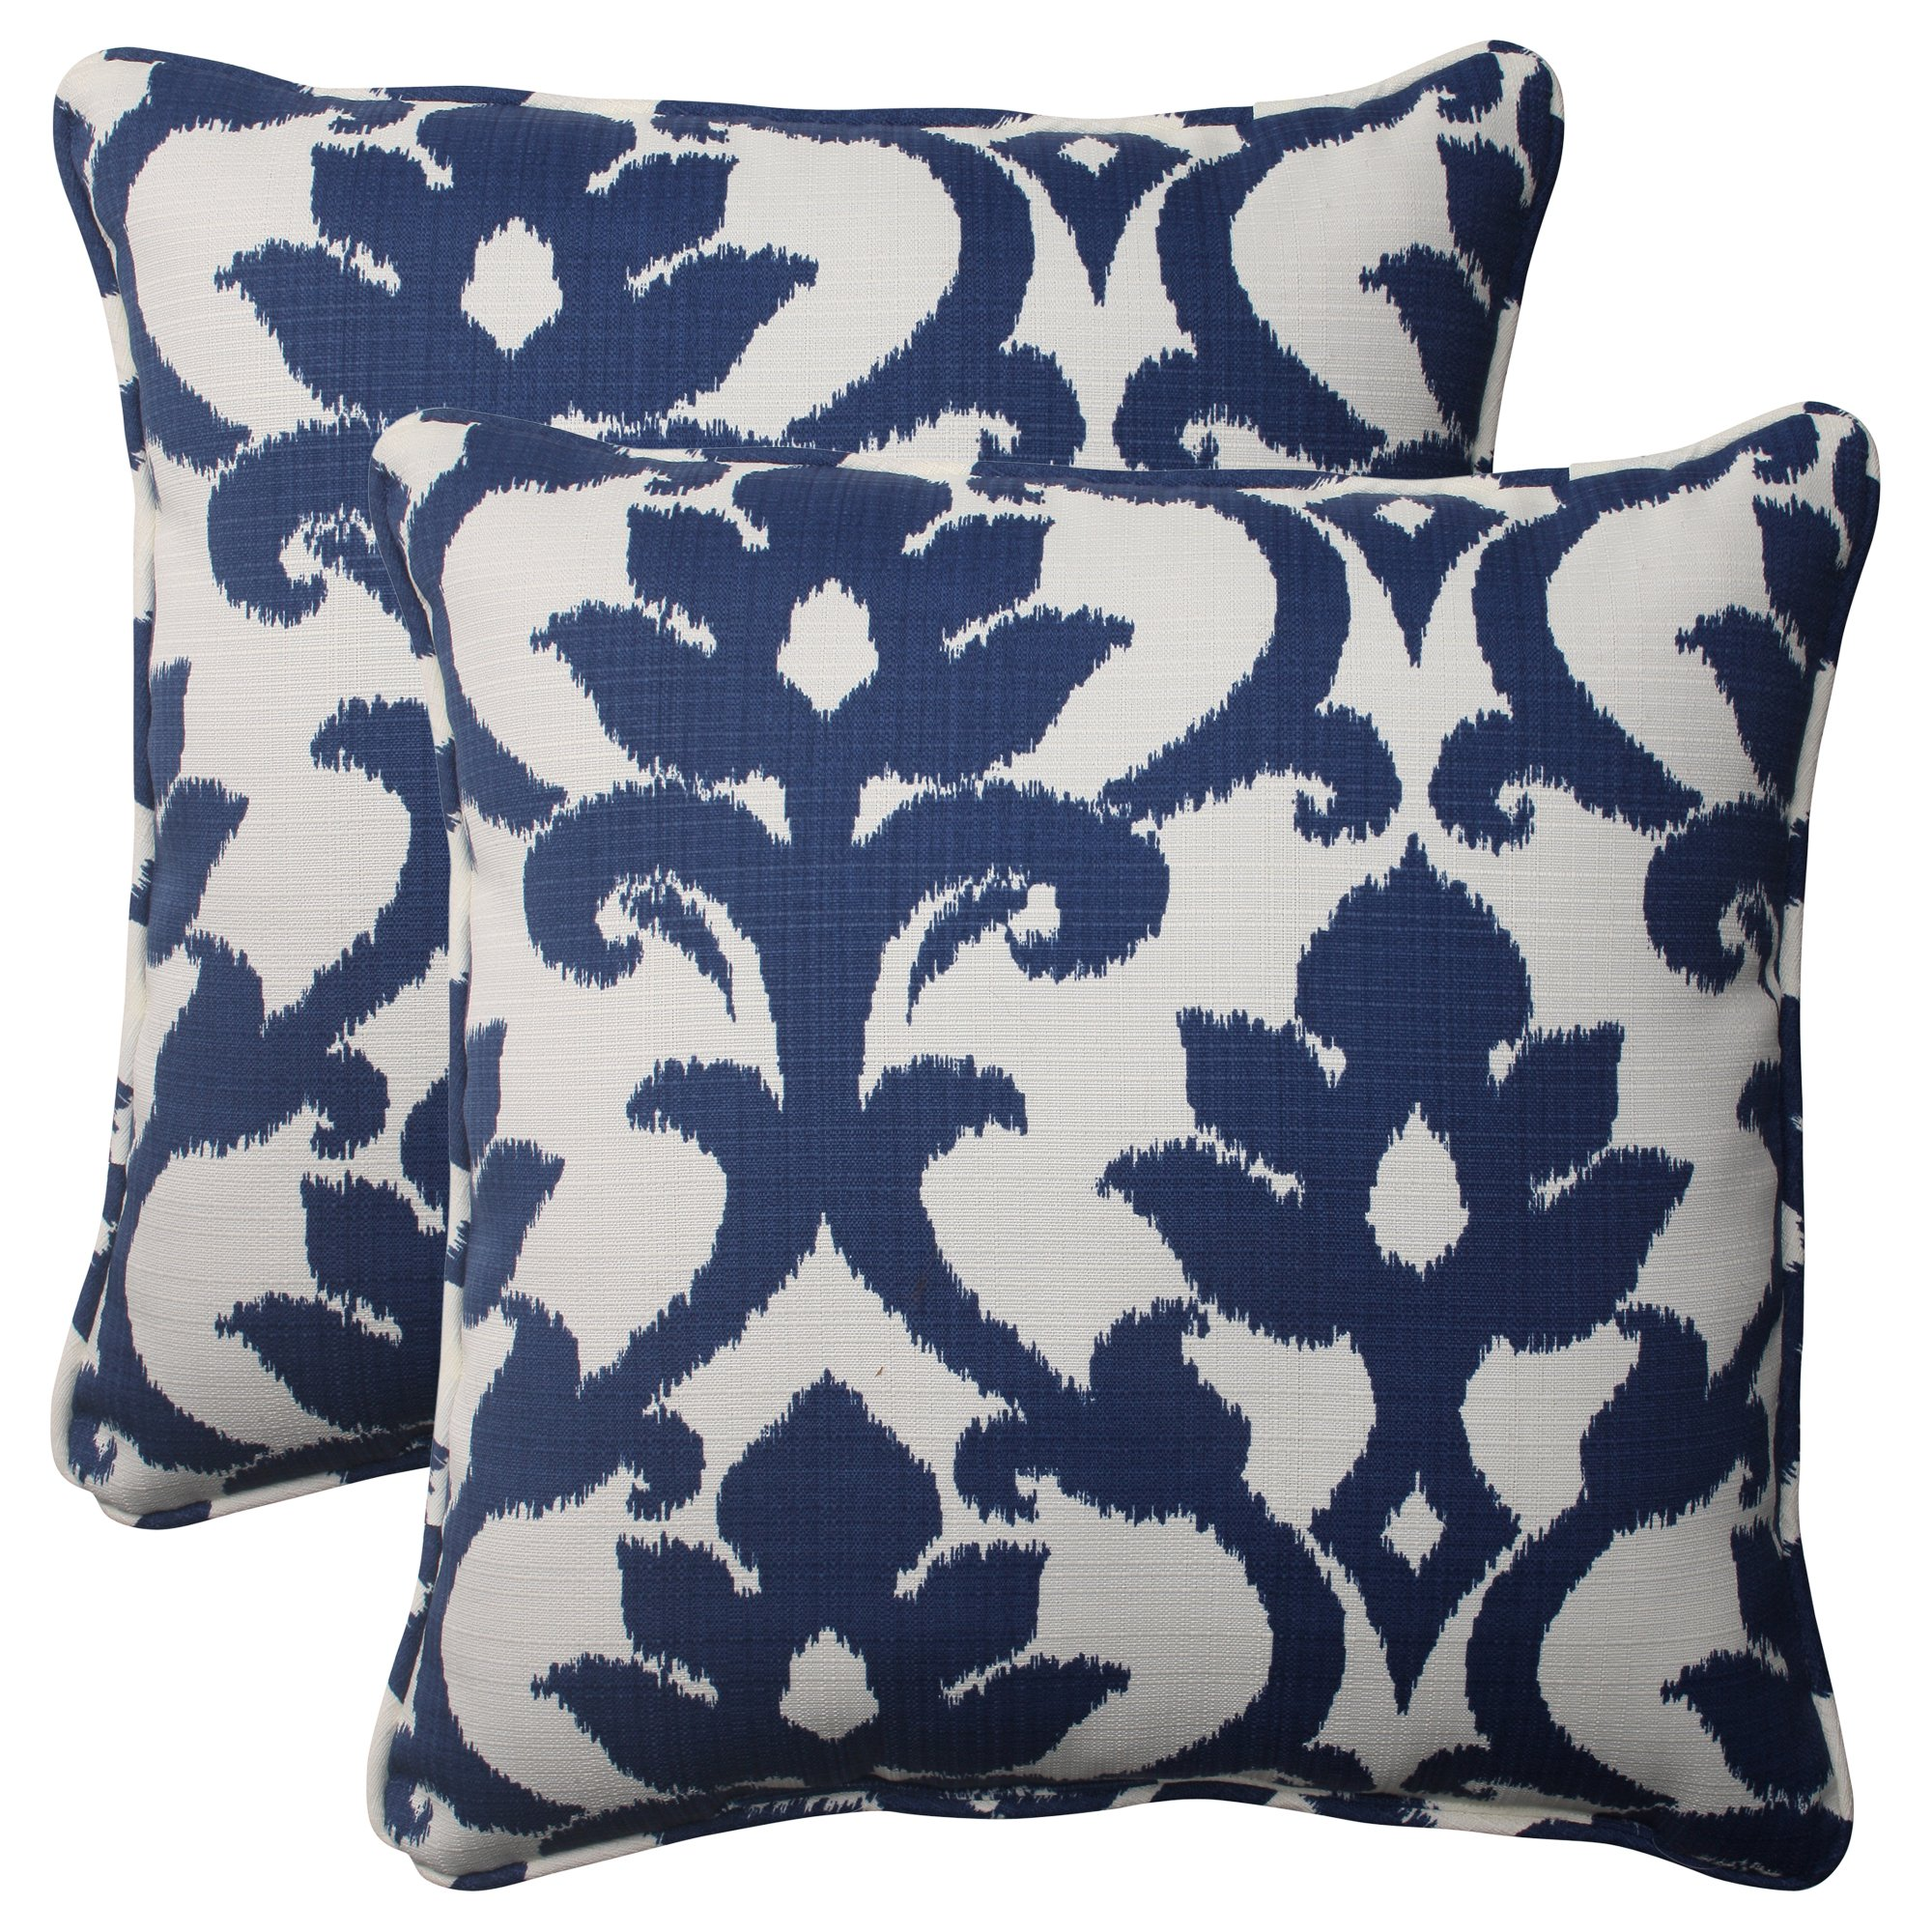 Pillow Perfect Outdoor Bosco Corded Throw Pillow, 18.5-Inch, Navy, Set of 2 by Pillow Perfect